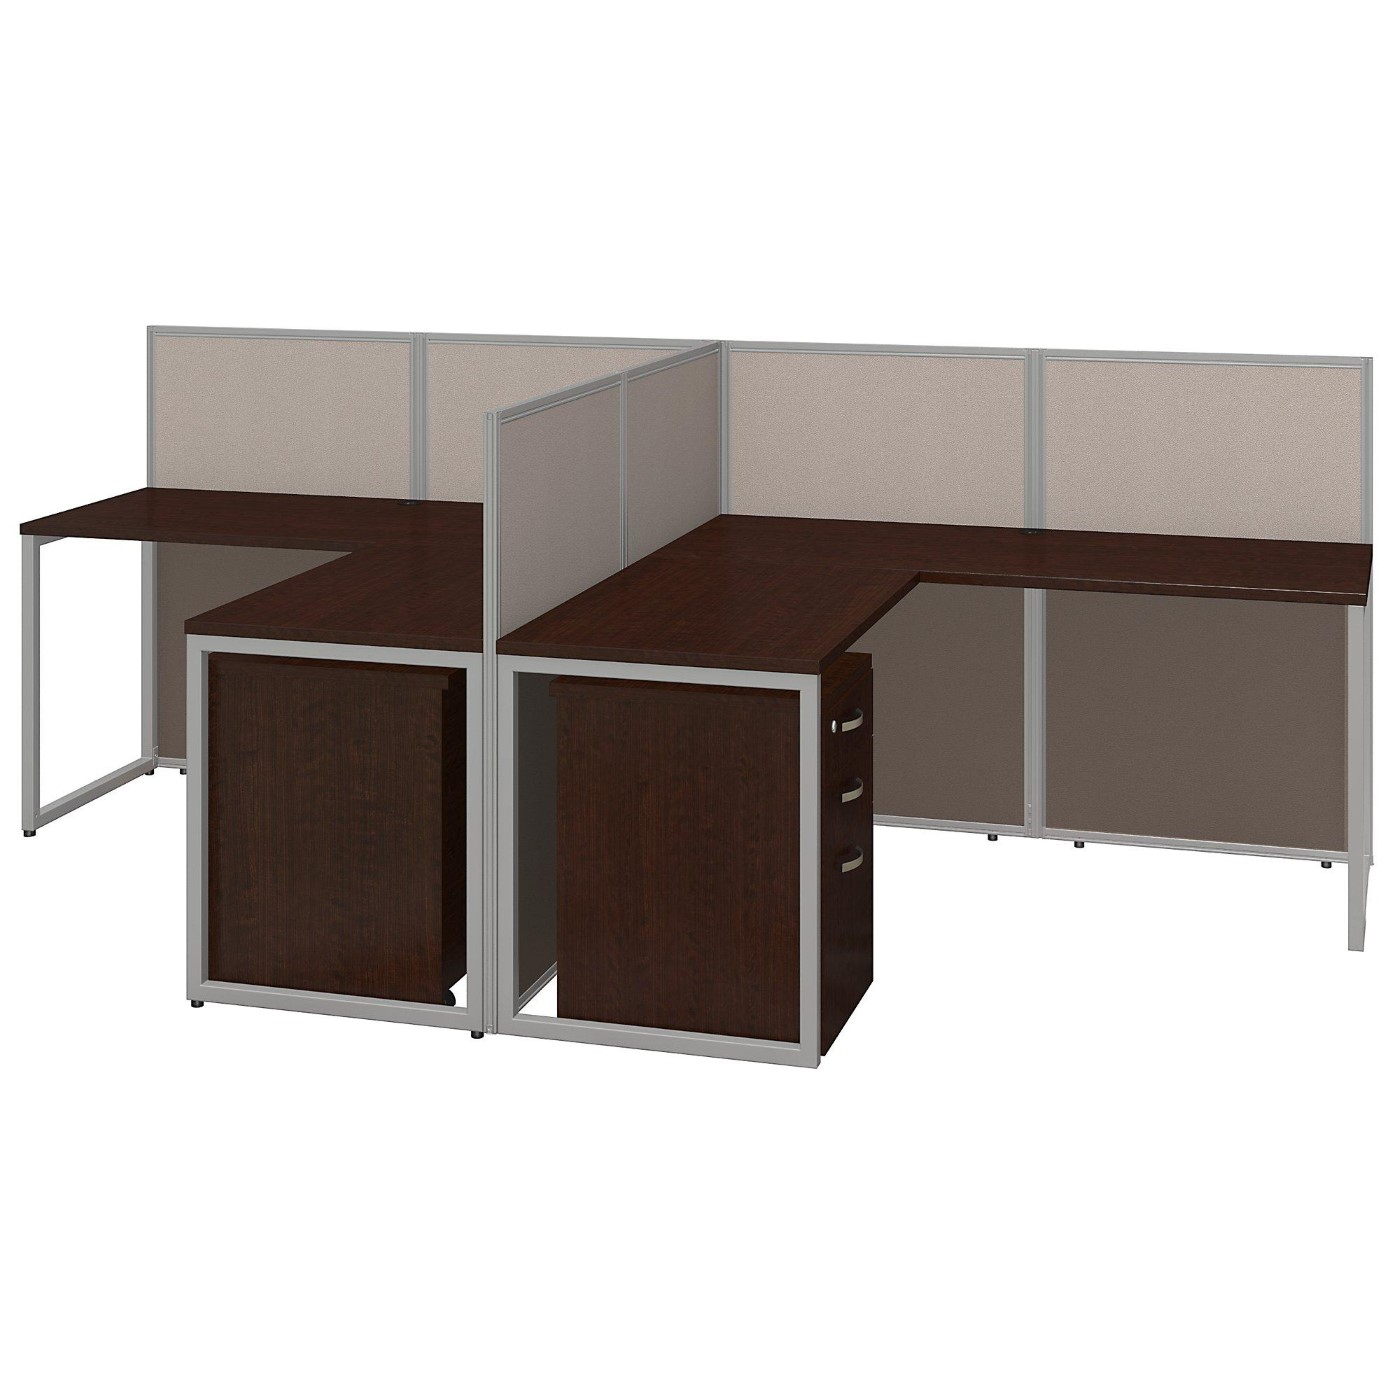 BUSH BUSINESS FURNITURE EASY OFFICE 60W TWO PERSON L SHAPED DESK OPEN OFFICE WITH MOBILE FILE CABINETS. FREE SHIPPING.  SALE DEDUCT 10% MORE ENTER '10percent' IN COUPON CODE BOX WHILE CHECKING OUT. ENDS 5-31-20.